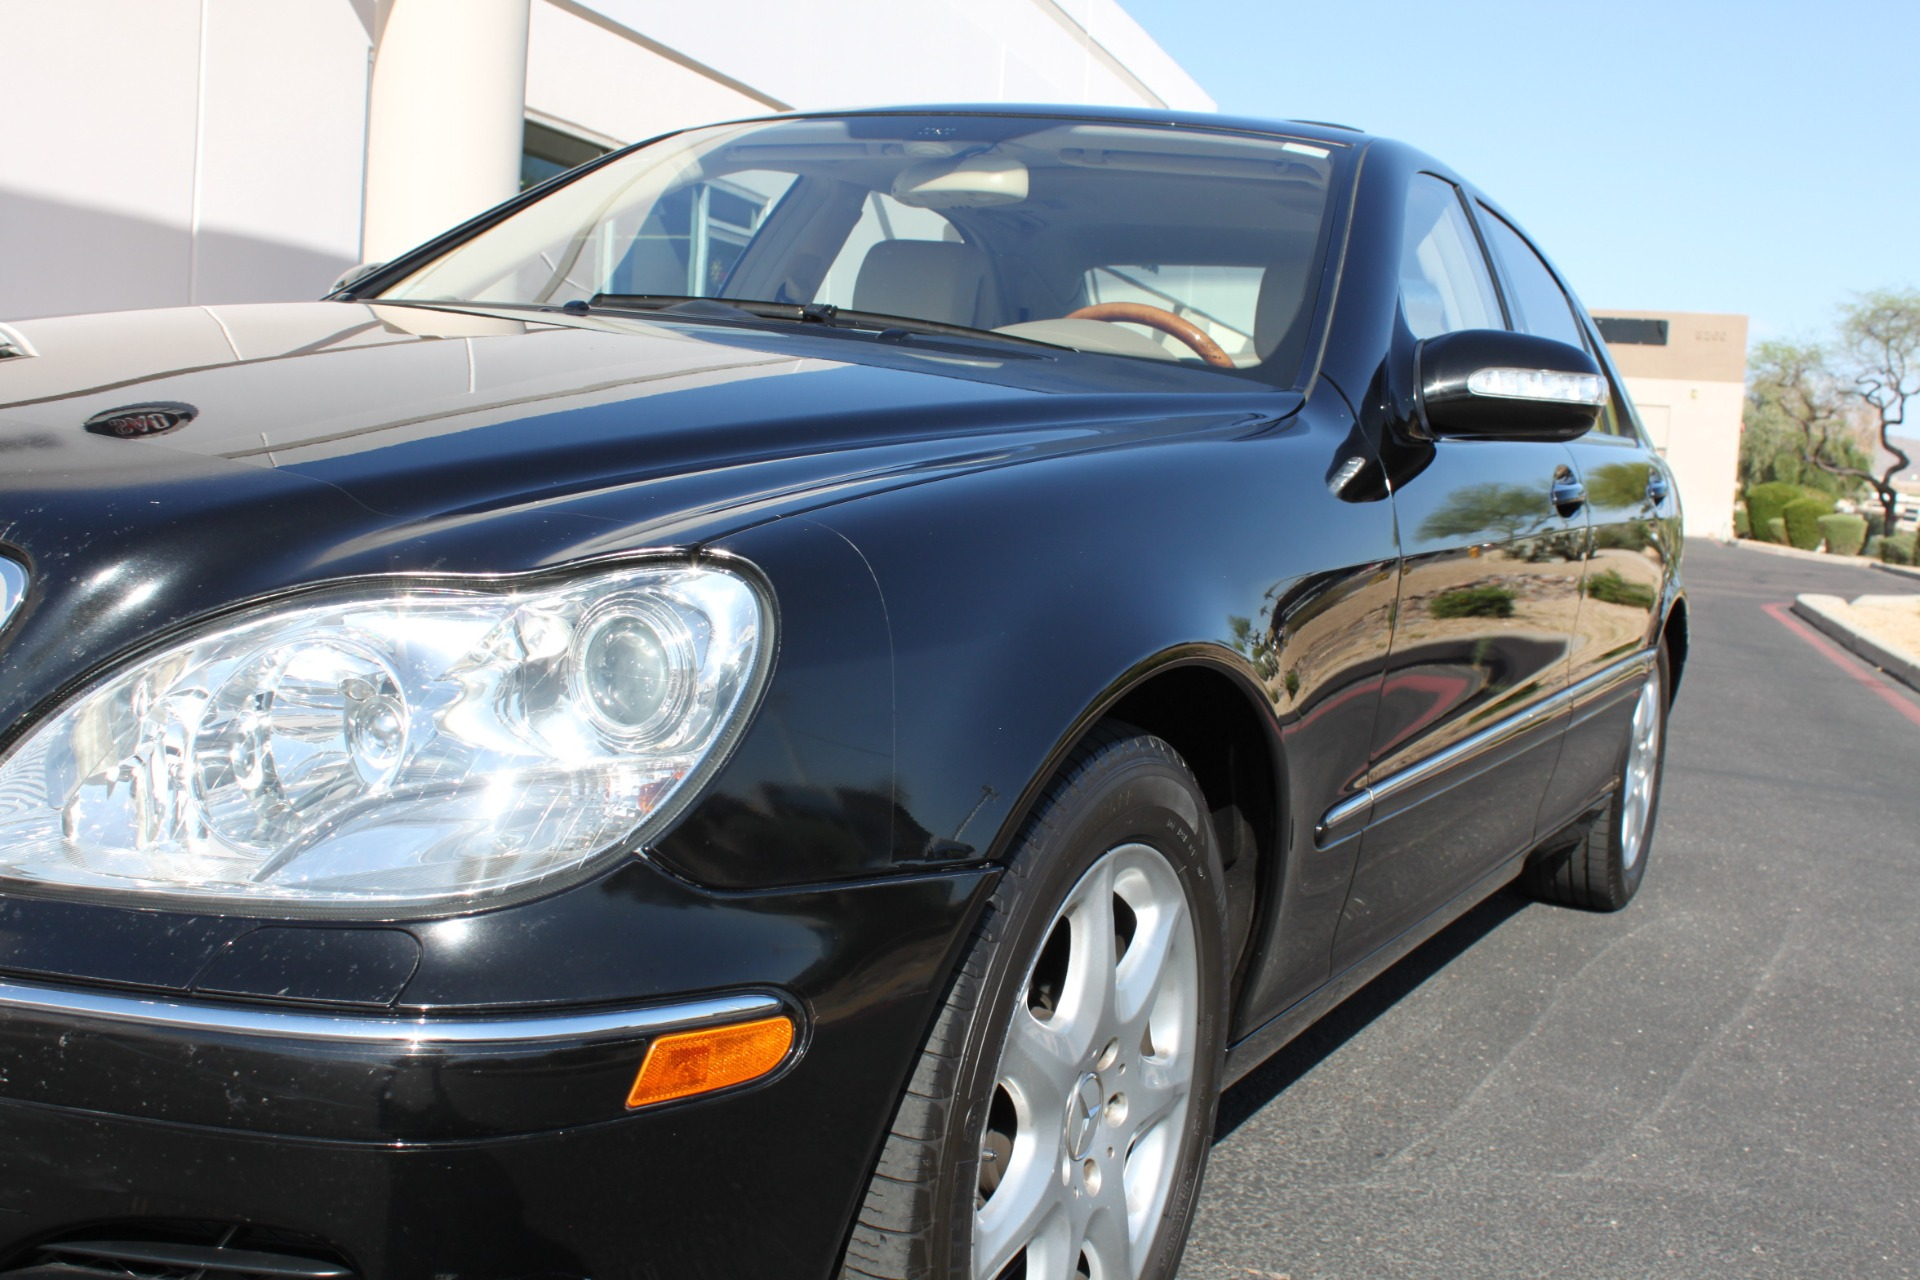 Used-2006-Mercedes-Benz-S-Class-43L-Acura